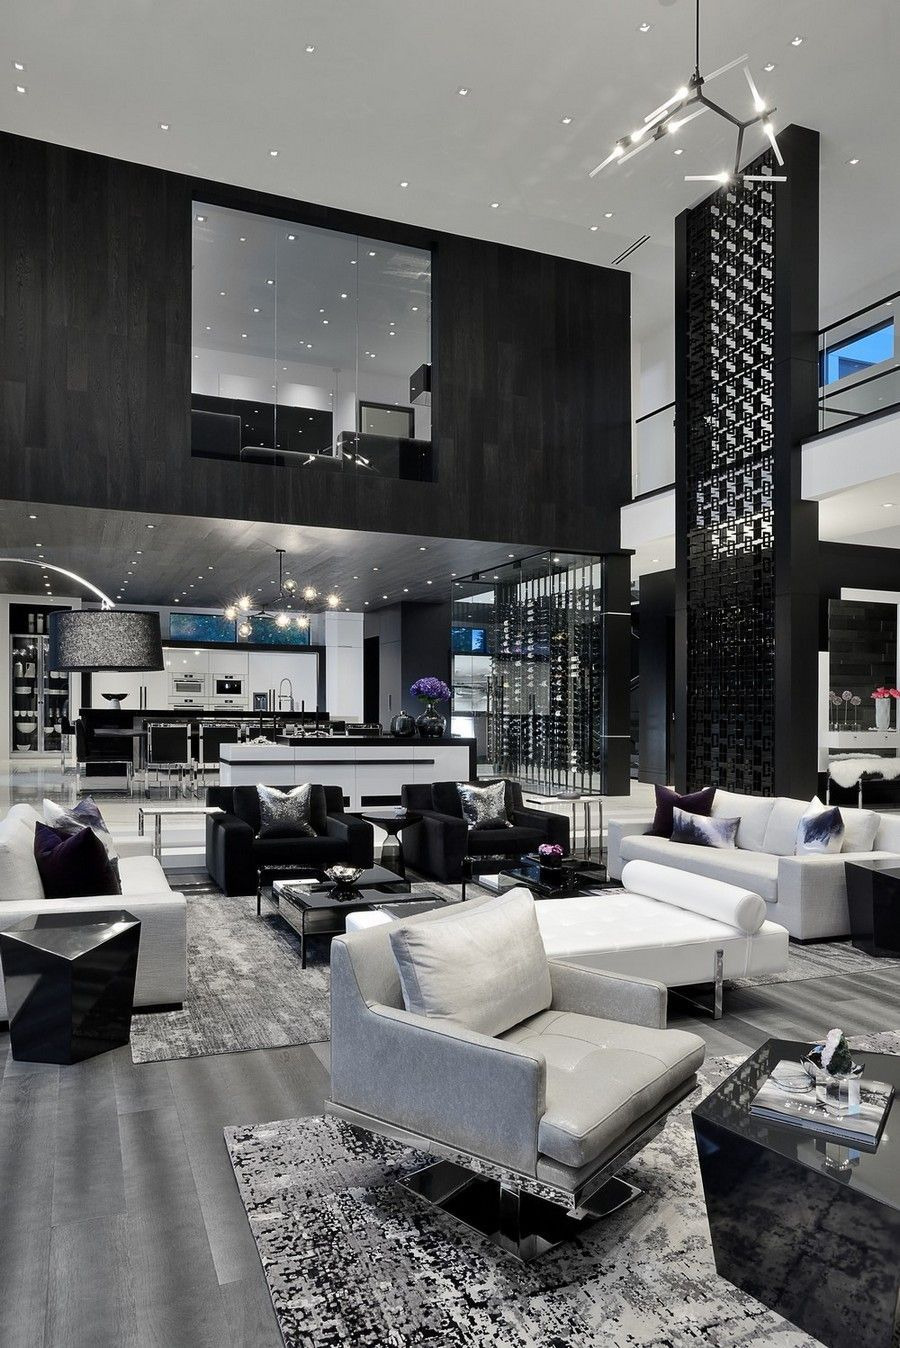 Luxury House Plans with Photos Of Interior Beautiful Be Inspired by This Modern Luxury House Design – Home and